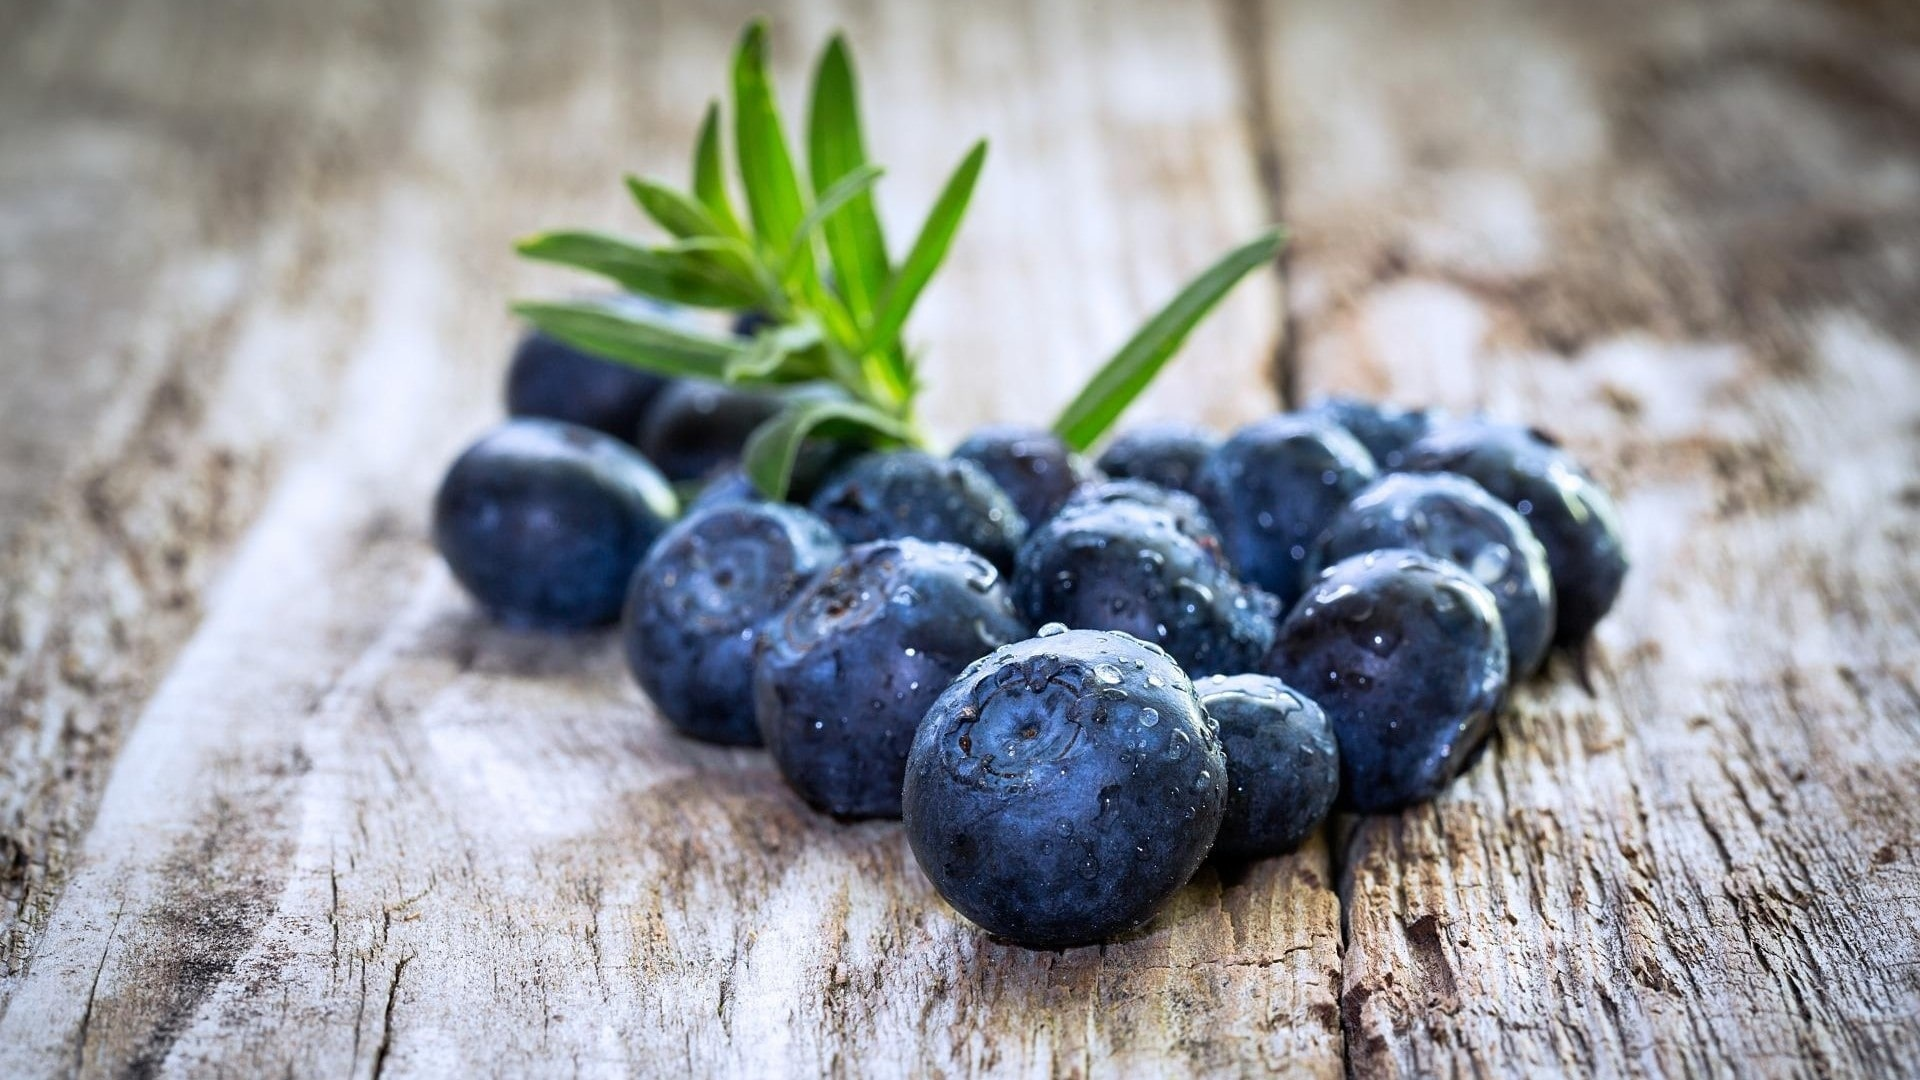 Blueberries Picture